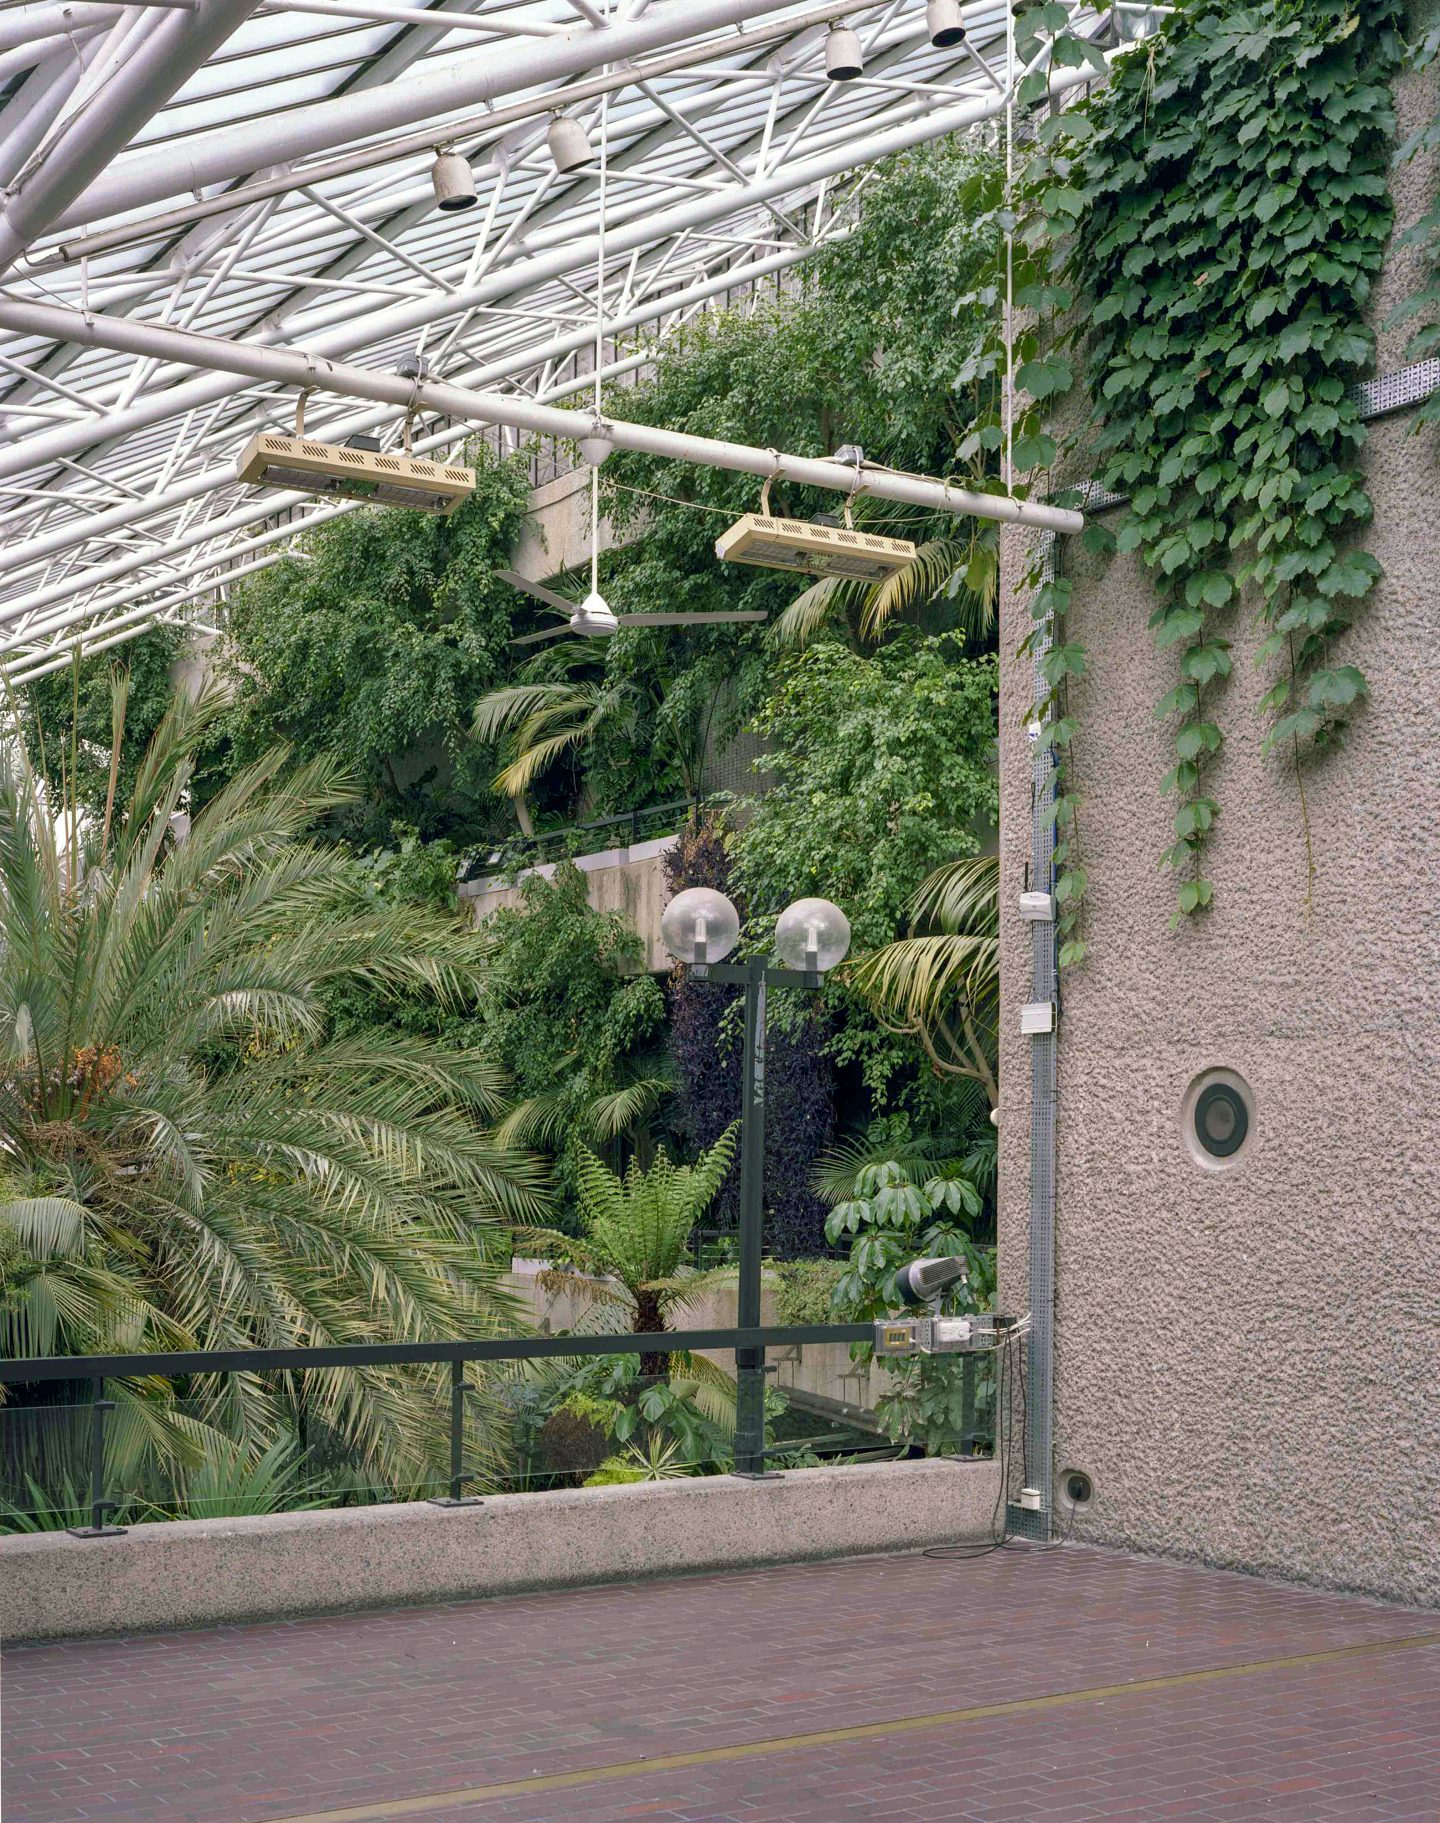 IGNANT-Travel-Luke-Hayes-The-Barbican-Conservatory-04